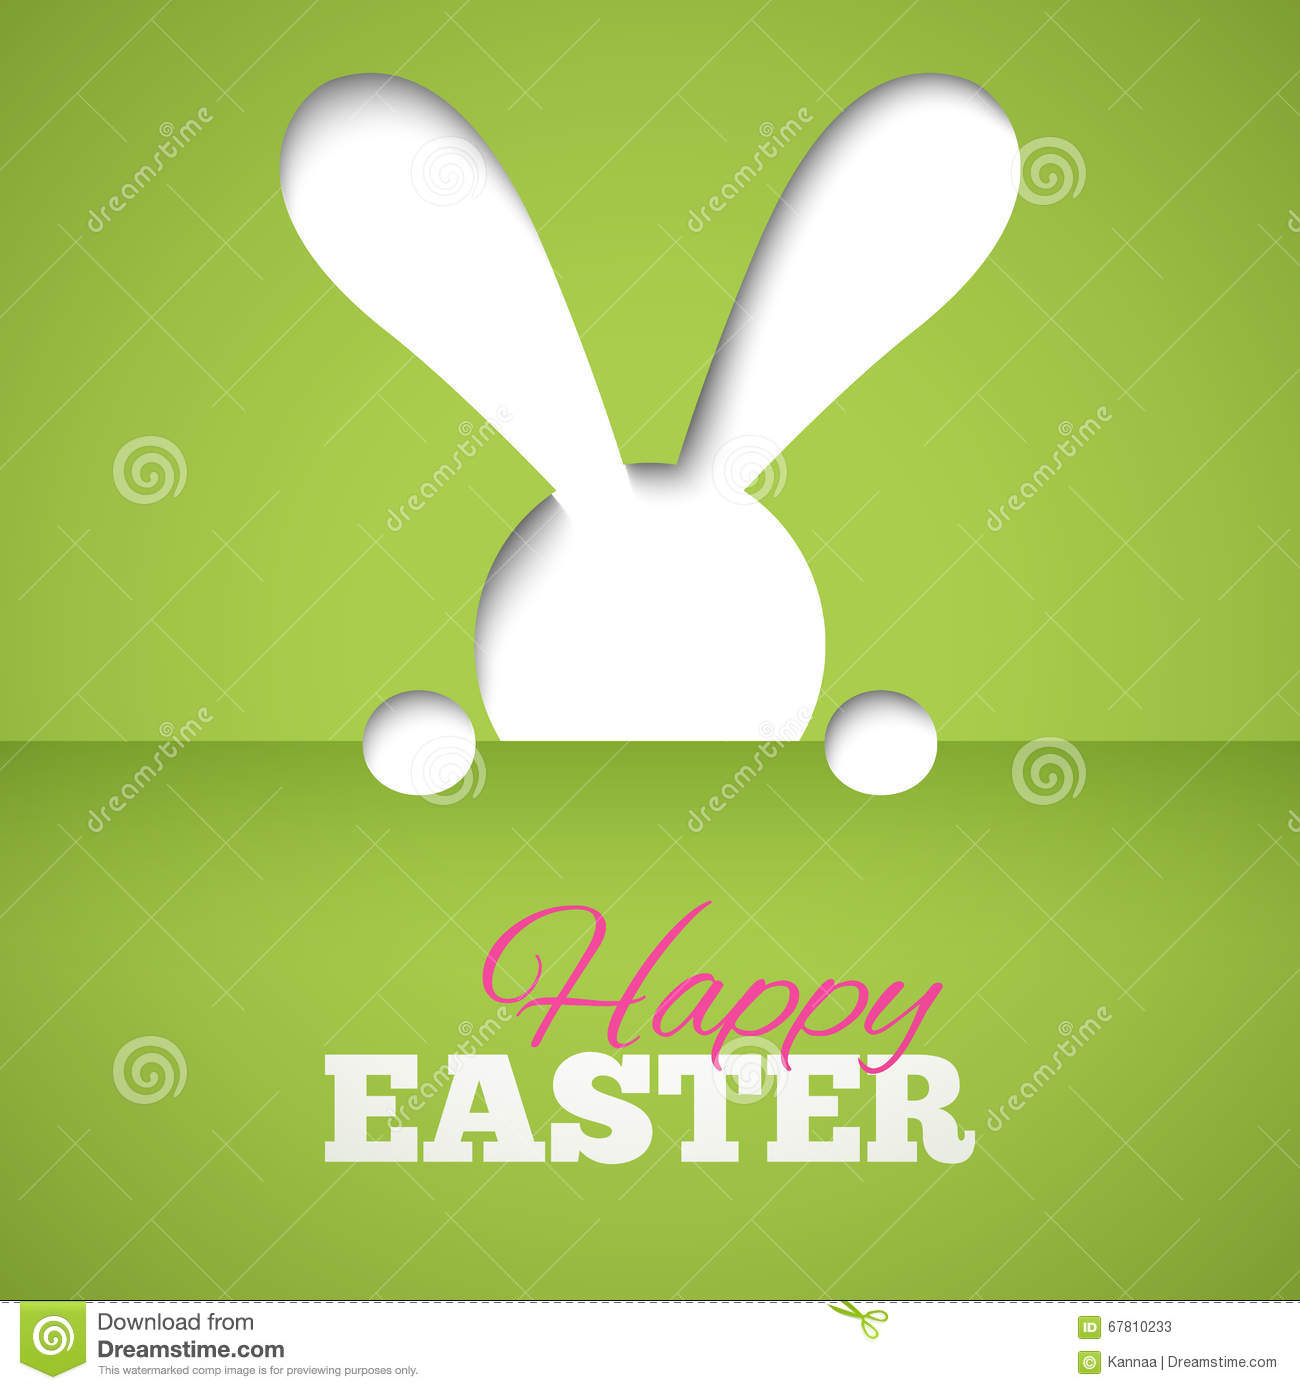 Green Animal Print Wallpaper Greeting Card With Happy Easter Rabbit And Egg Funny